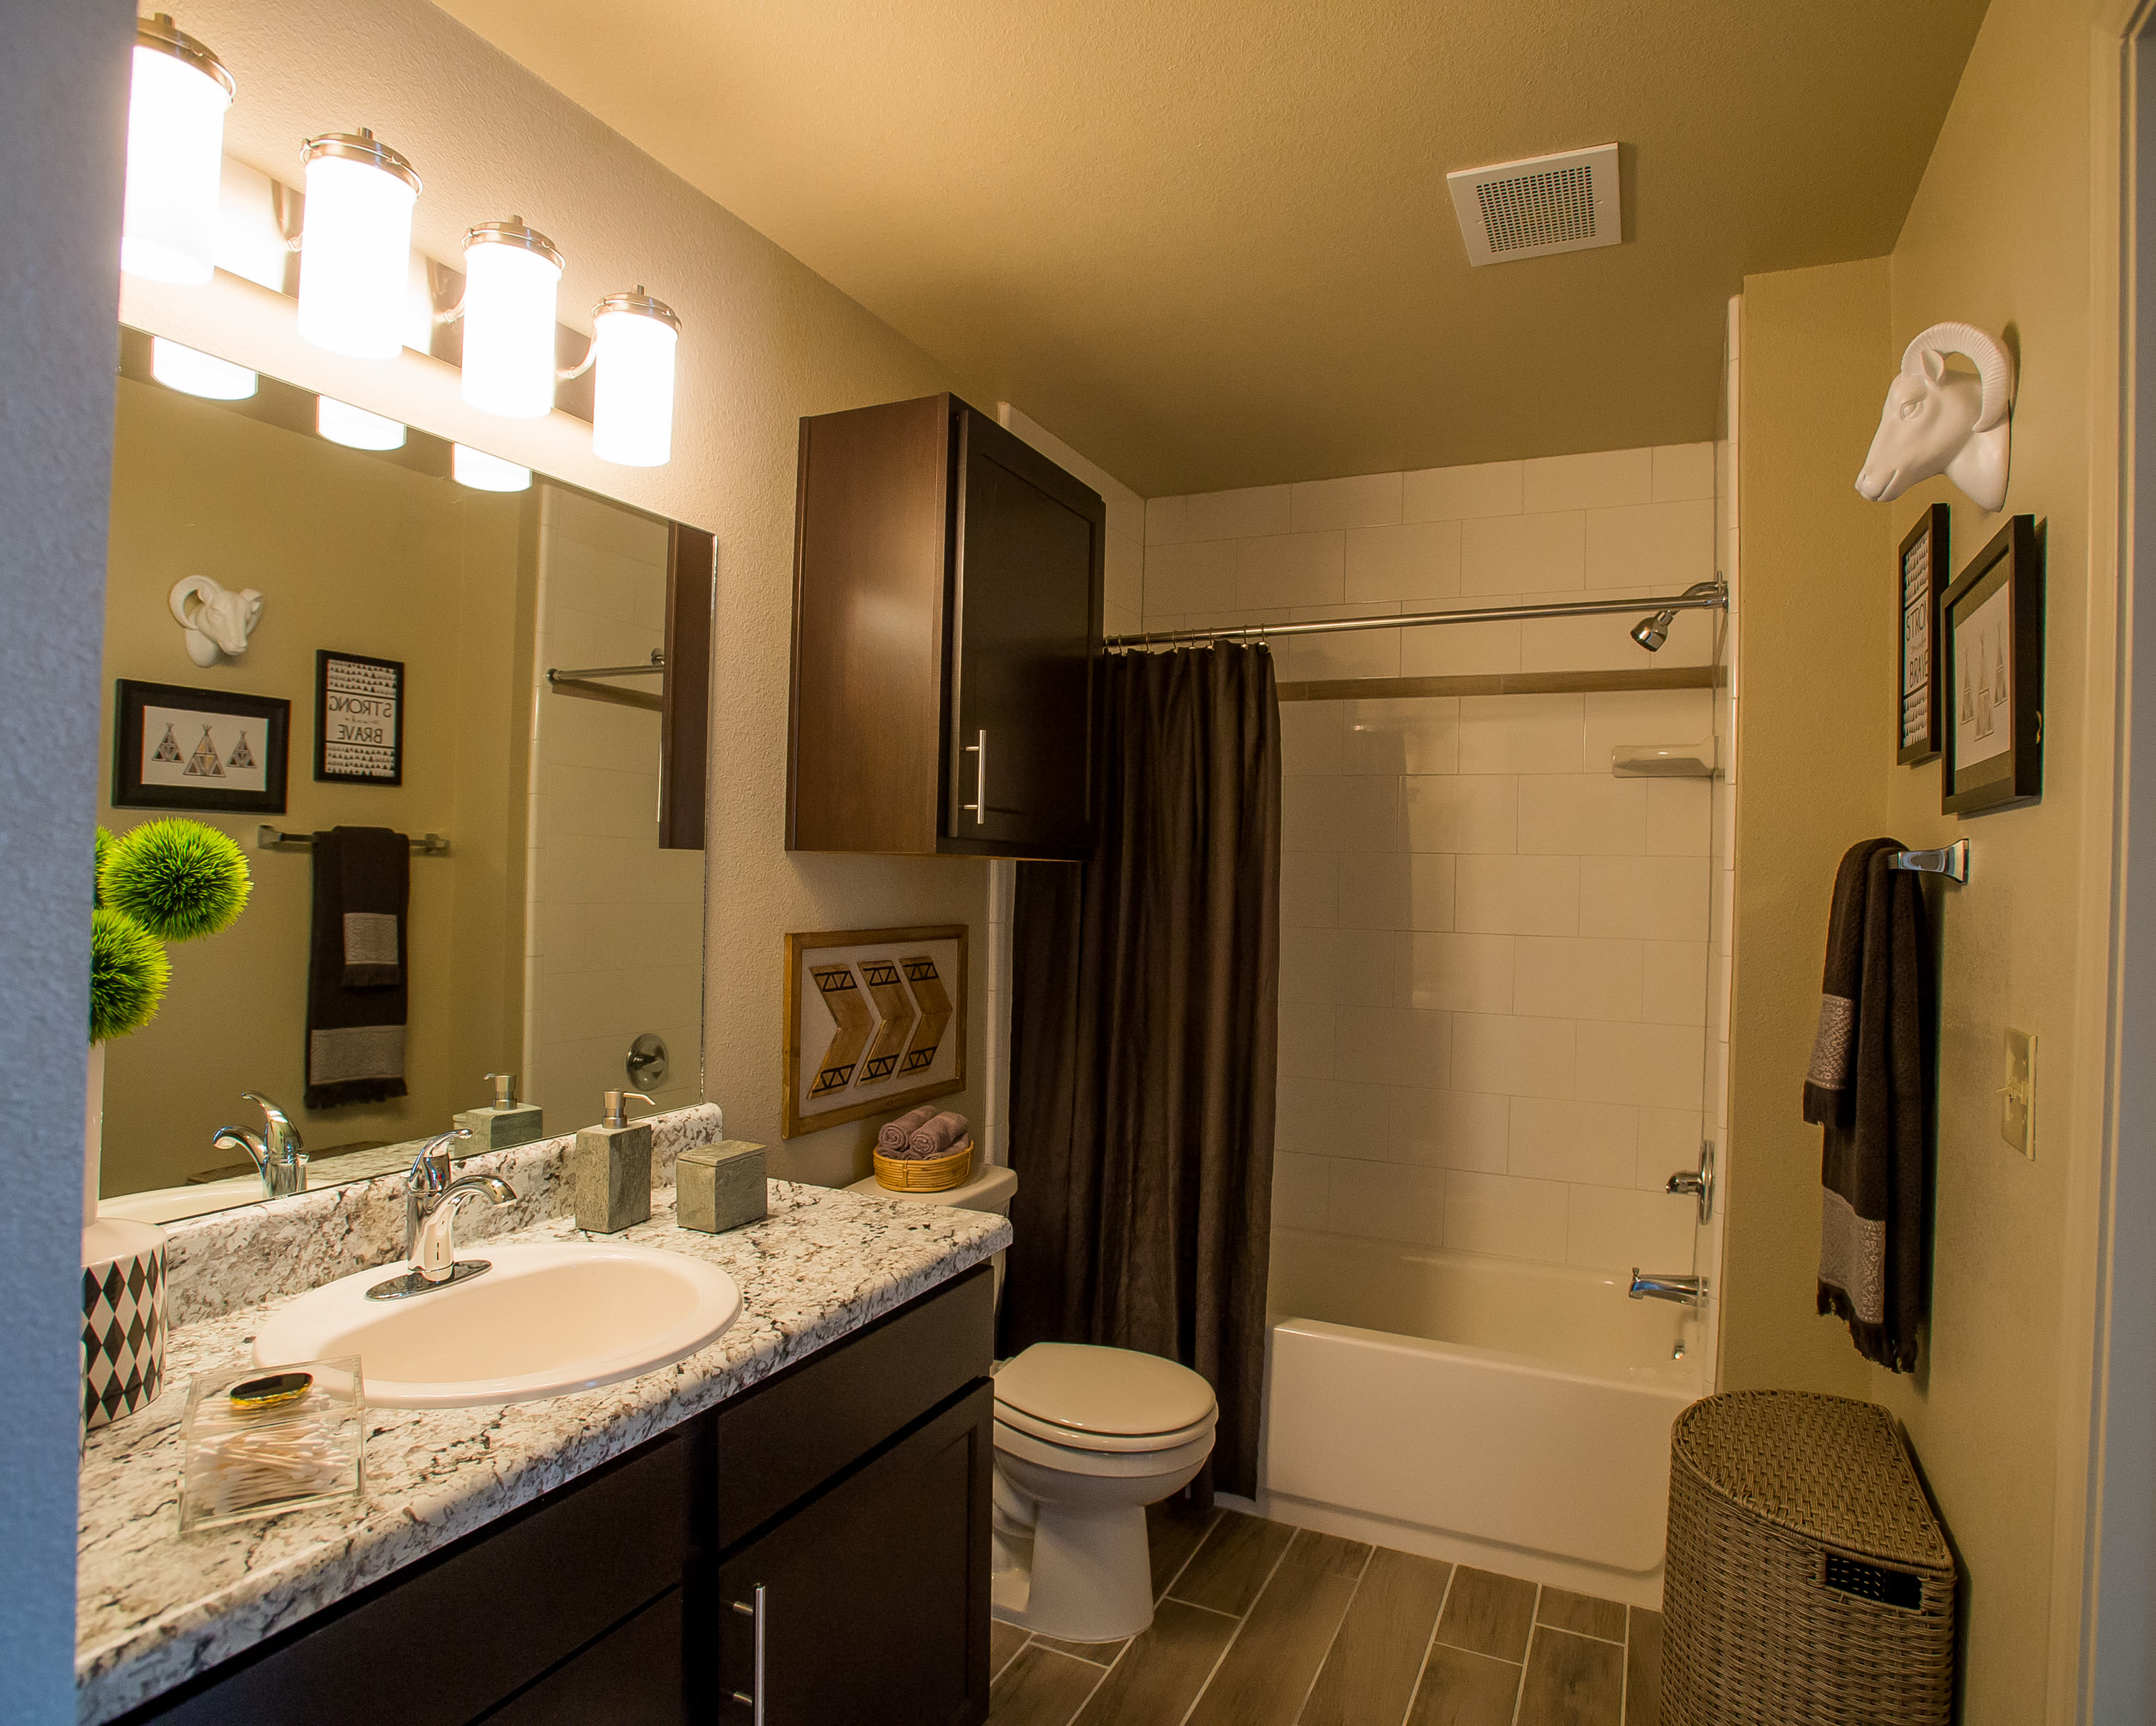 Bathroom at Portico at Friars Creek Apartments in Temple, Texas